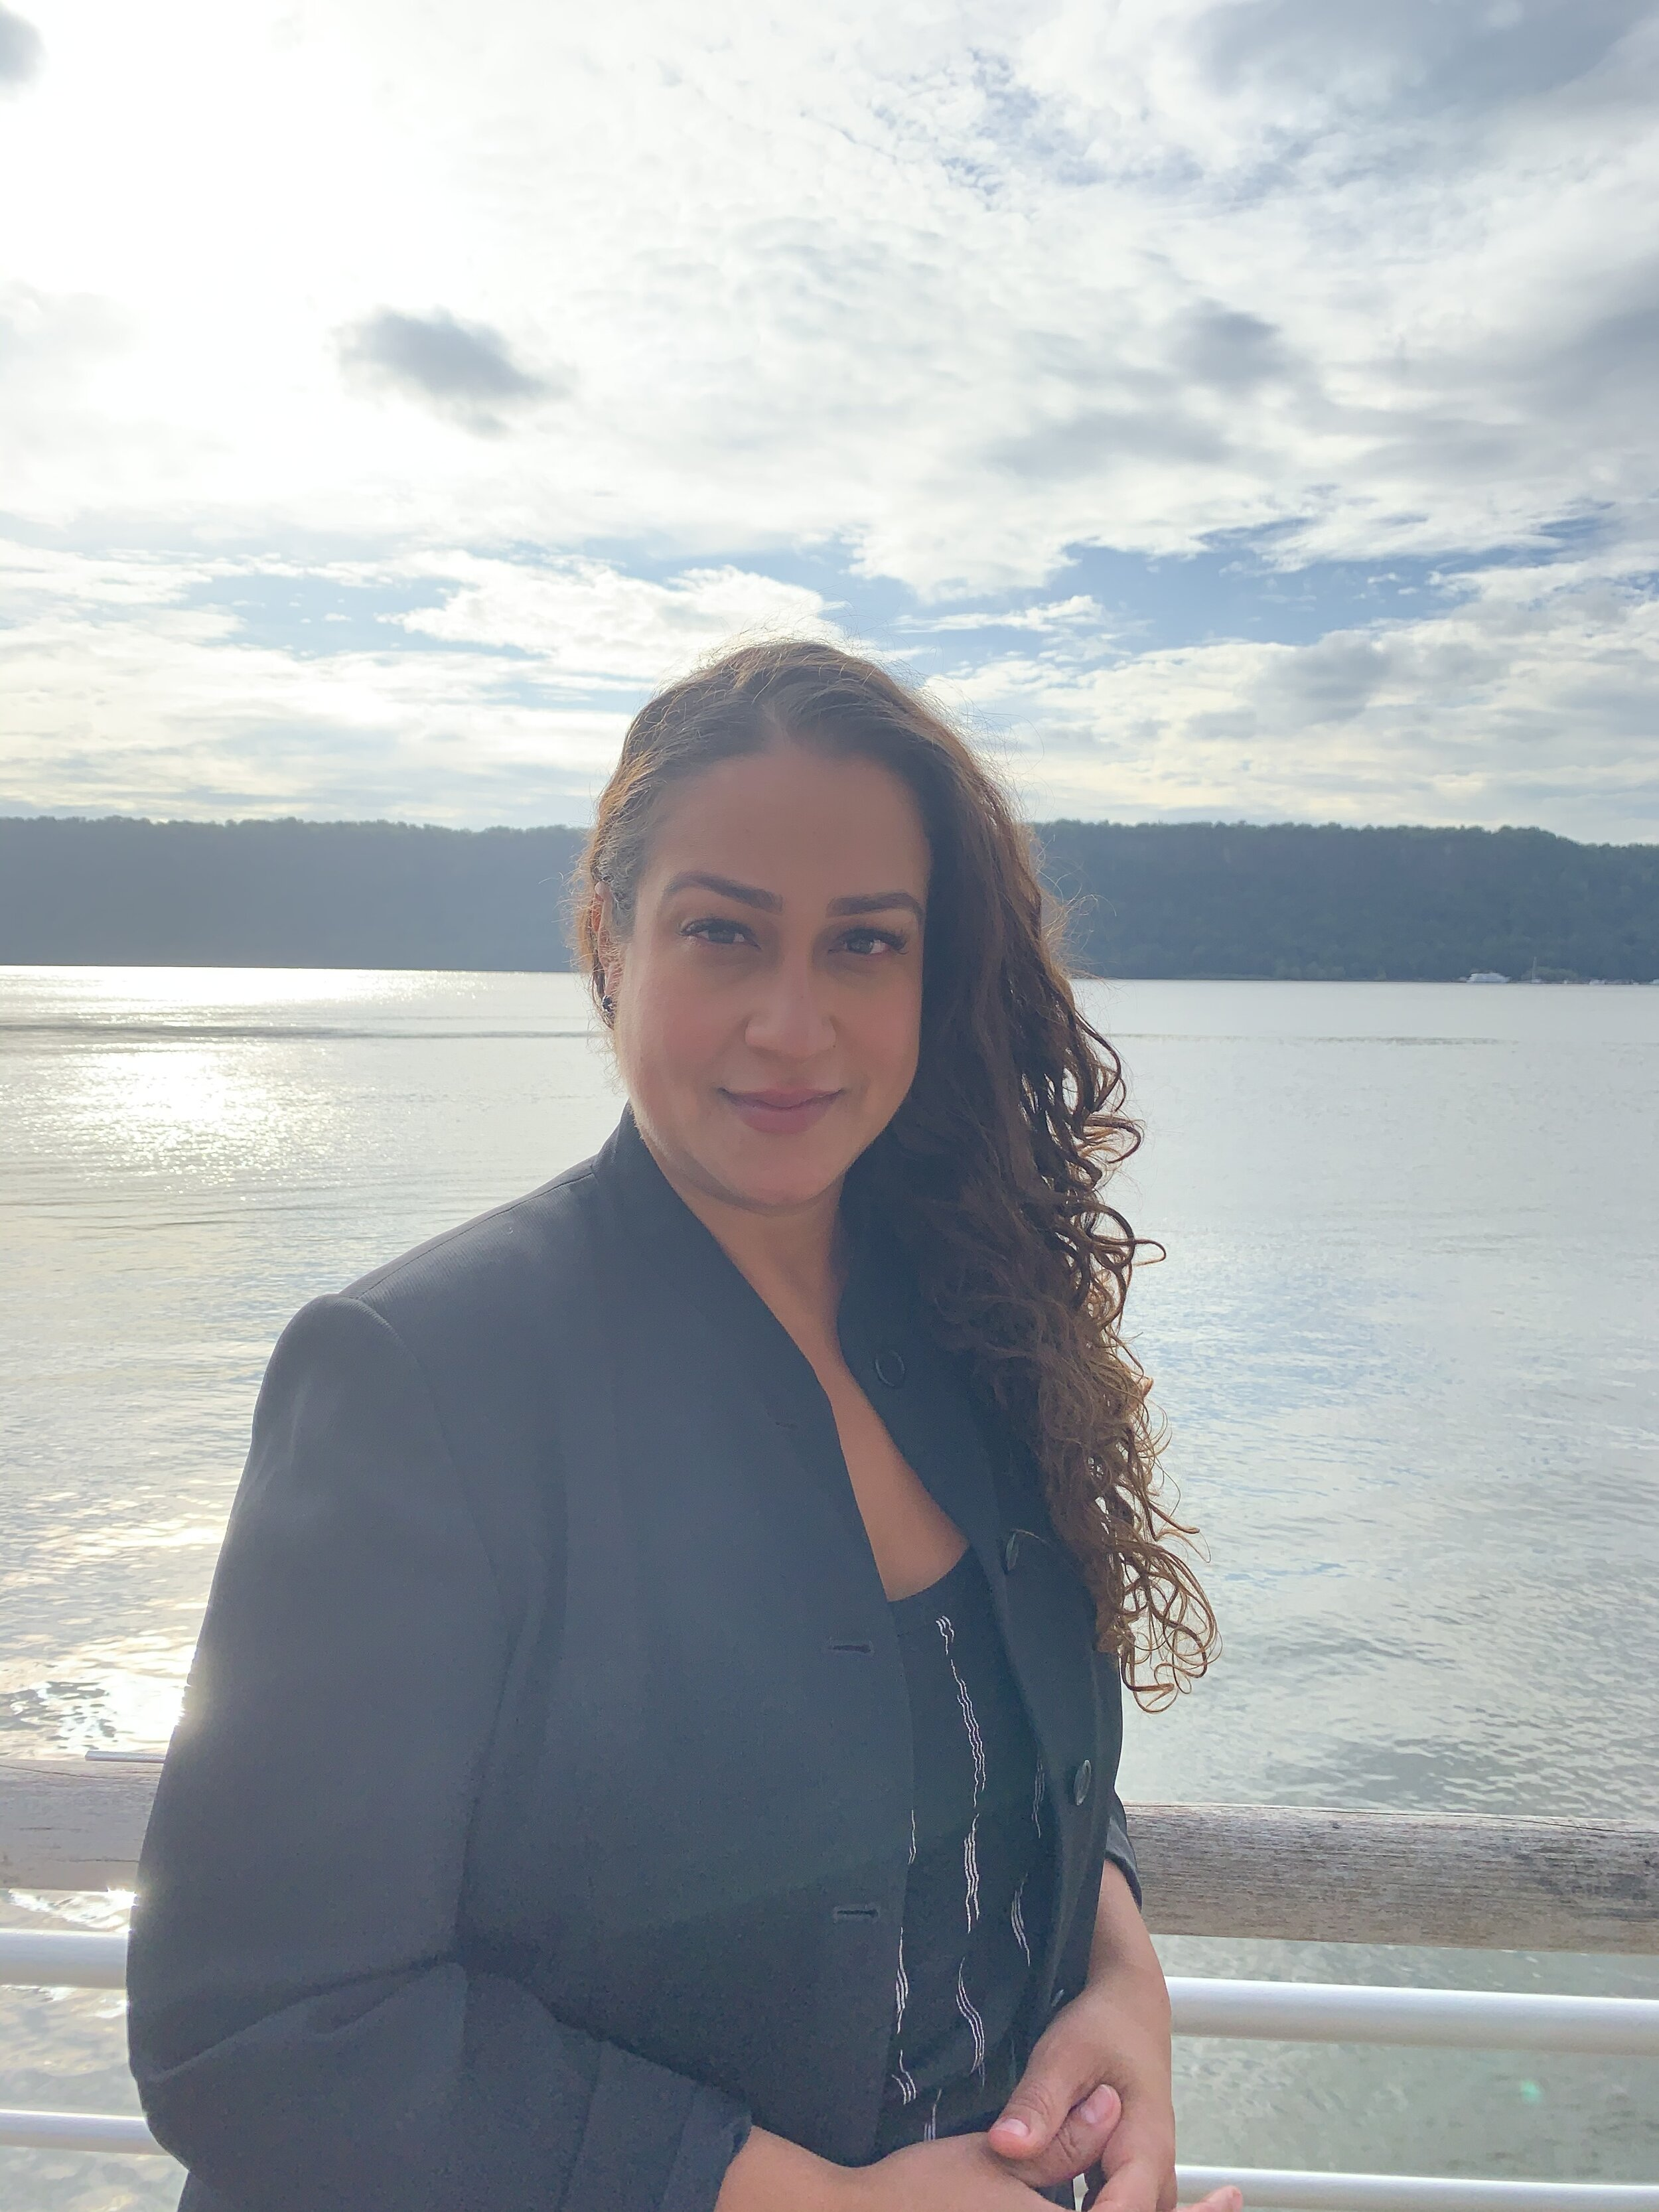 - yokairy tavarez is the author of several novels, including project: femme, the dystopian trilogy about a fictional heroine. her passion is untold stories with strong female protagonists and she is currently working on her next projects, soon to be released as well.